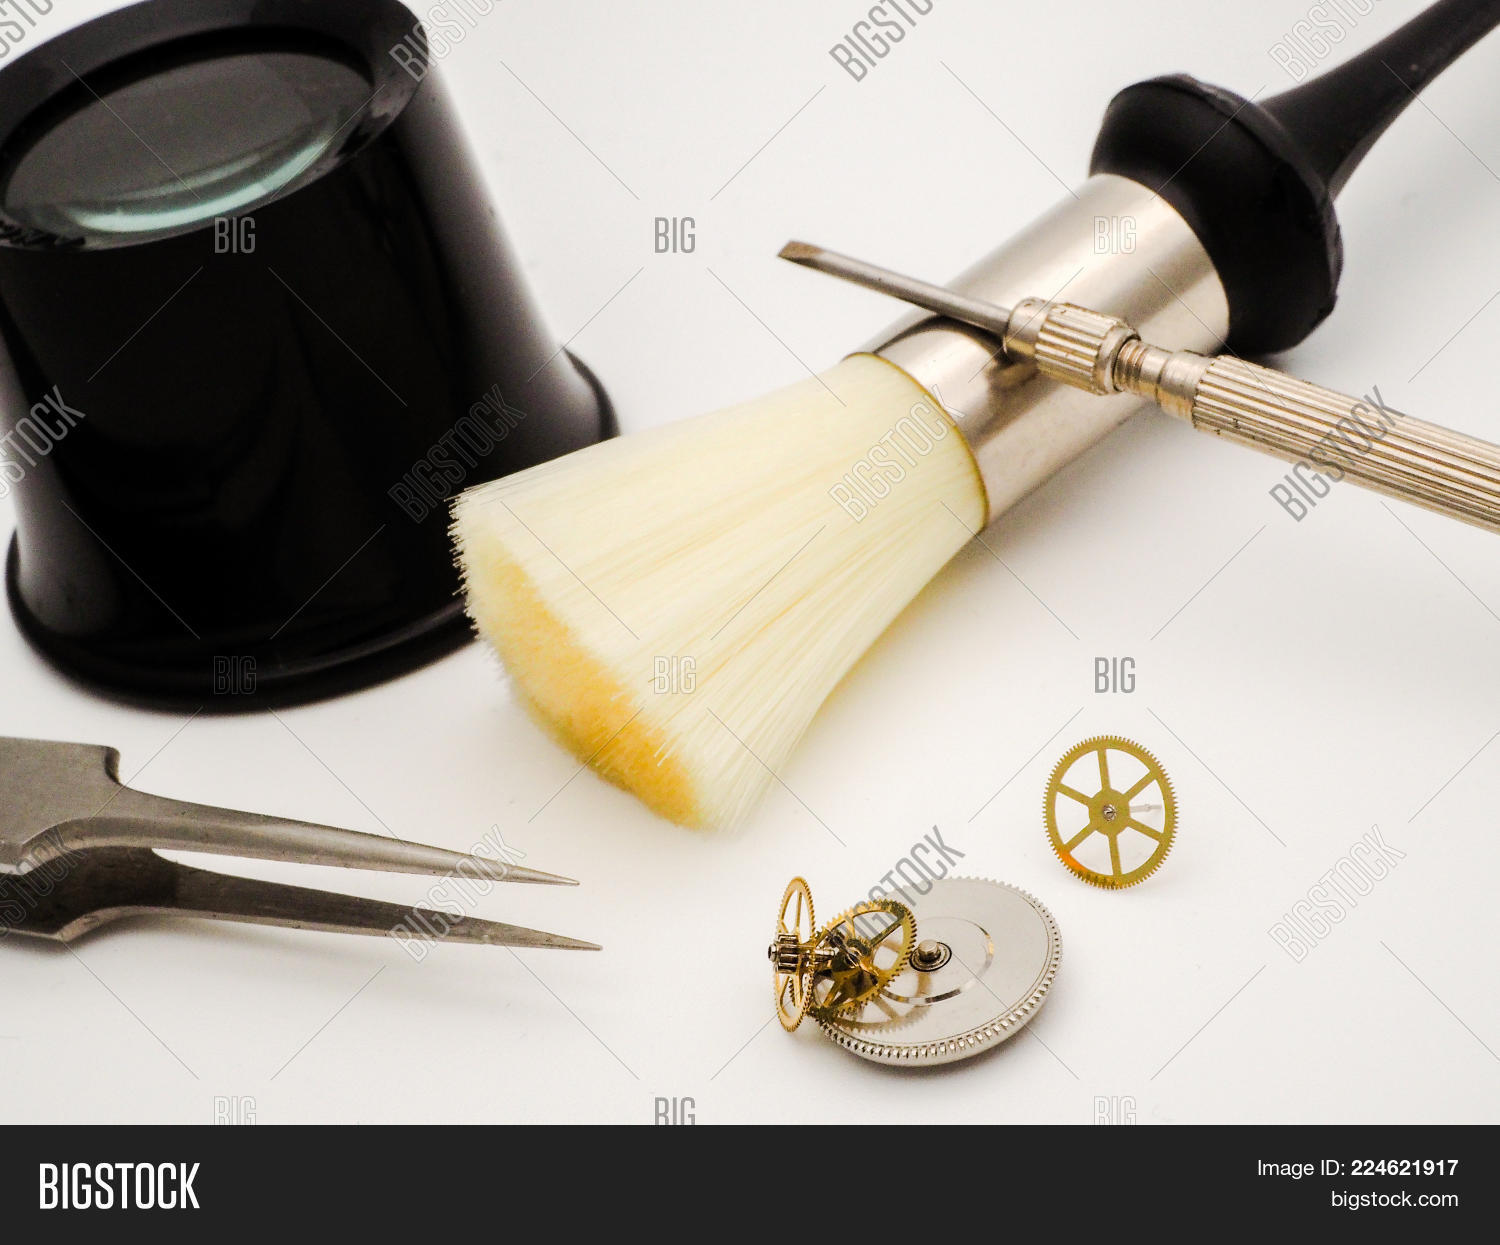 Watchmakers Precision Image & Photo (Free Trial) | Bigstock